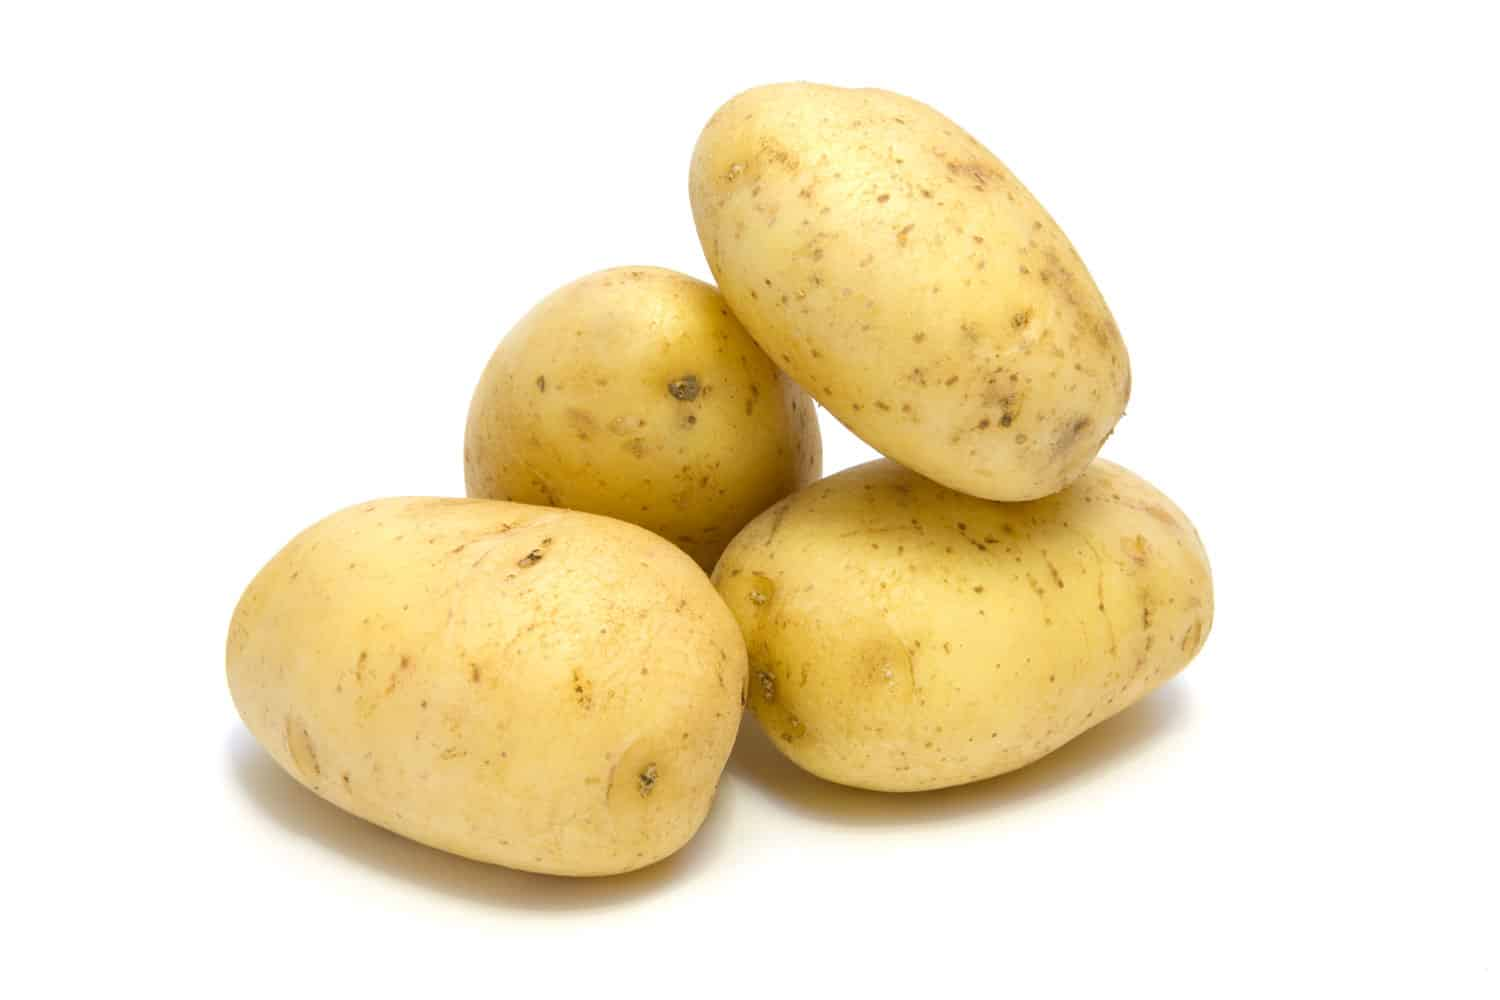 Up close photo of potatoes on a white background